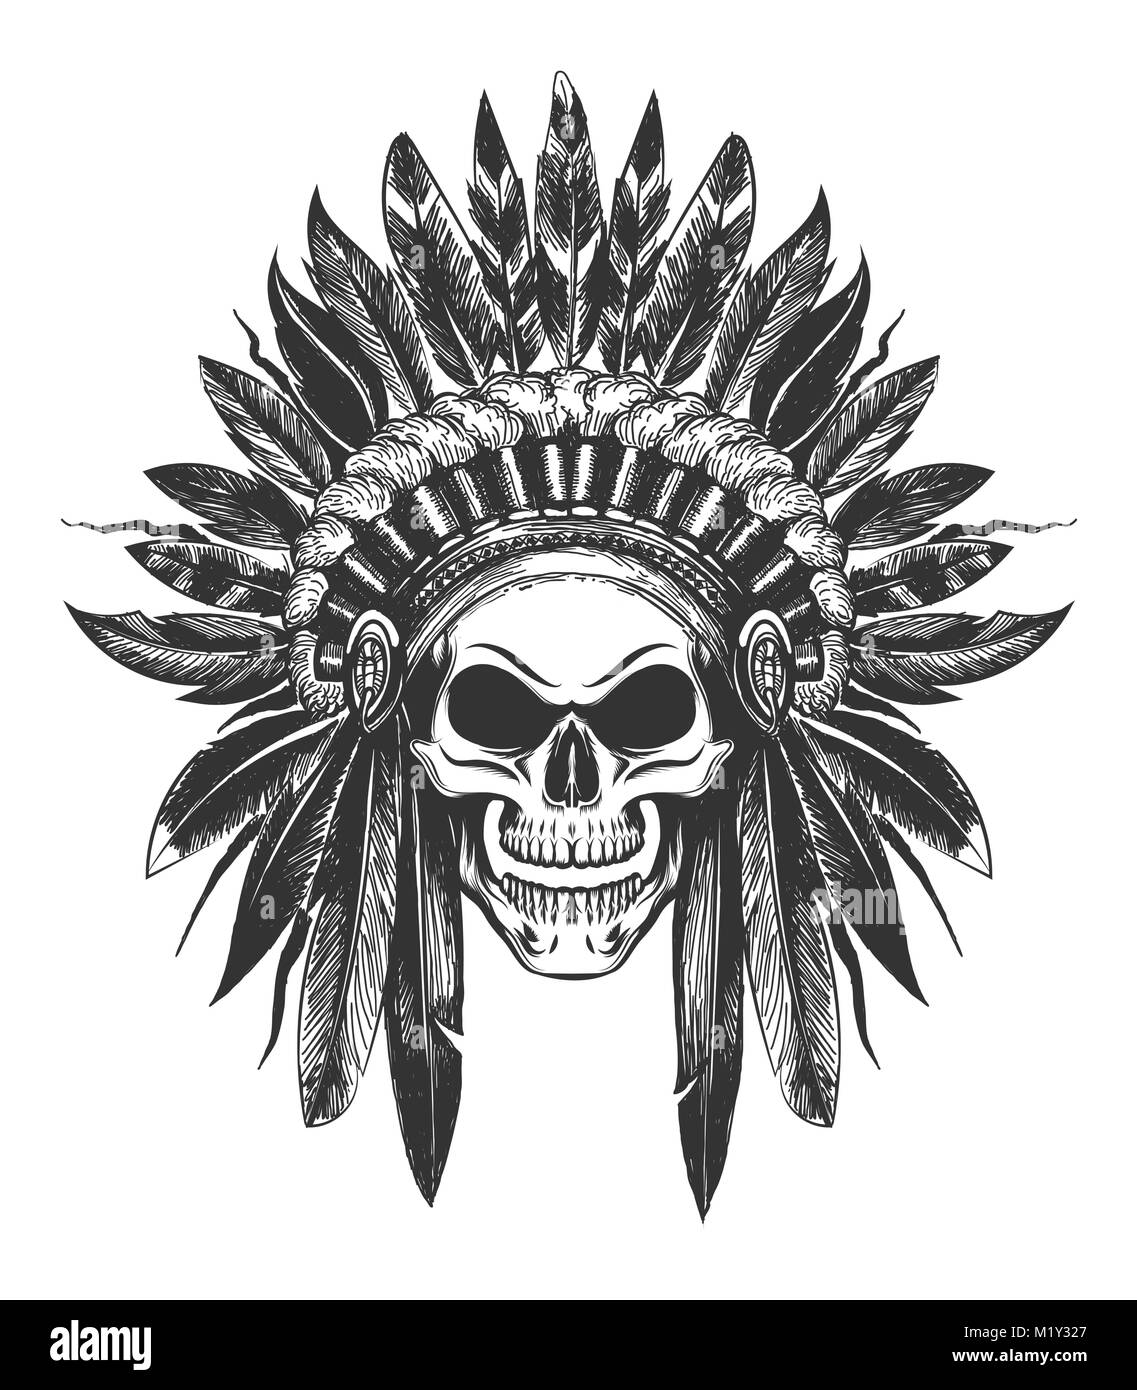 Human Skull In Native American Indian War Bonnet Drawn In Tattoo